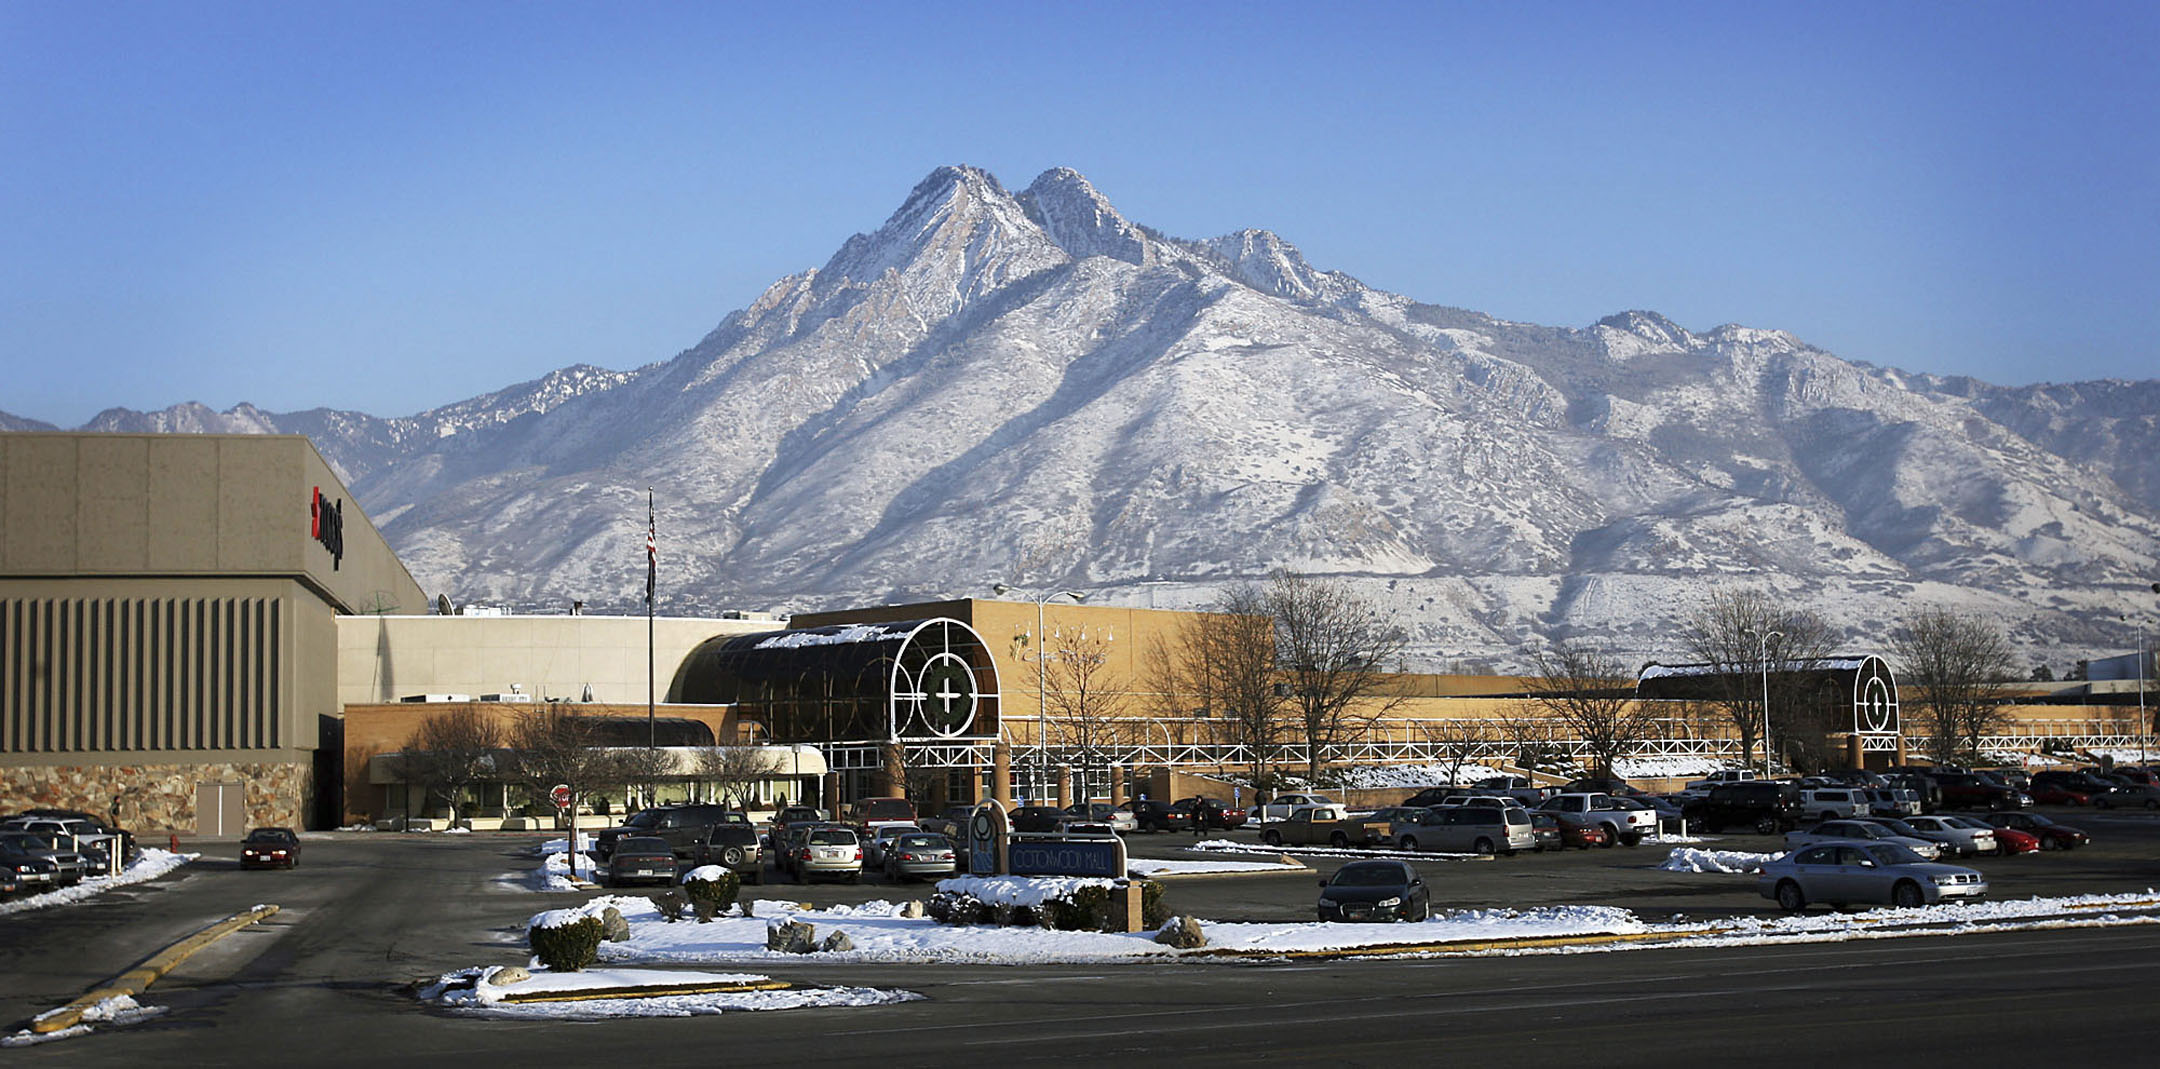 Old Cottonwood Mall site may be turned into 12-story residential towers, other housing and little retail space